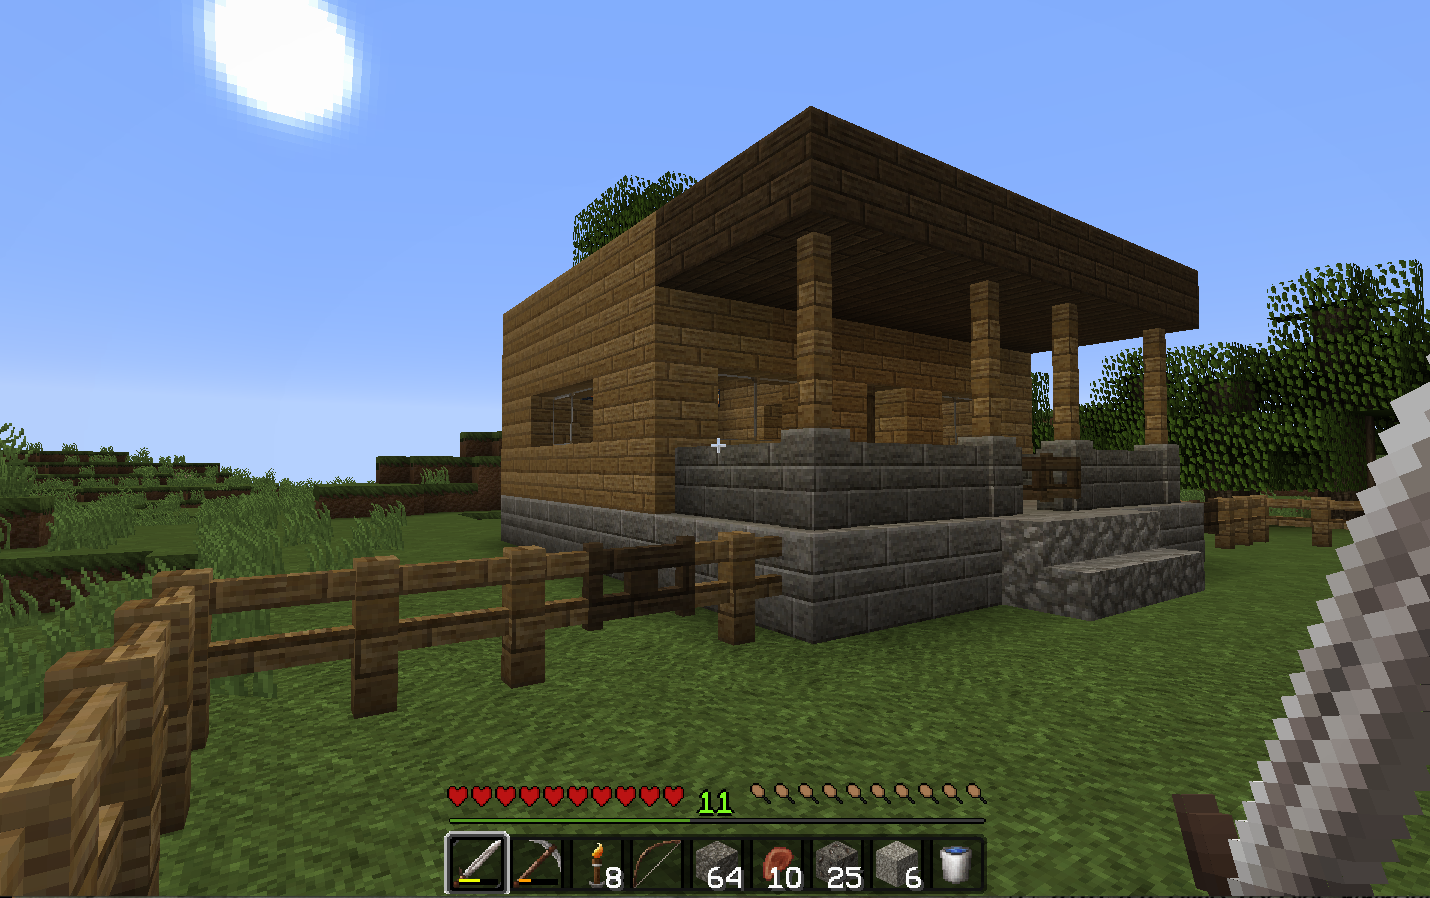 A view of a house in minecraft with the clarity Resource Pack textures downloaded